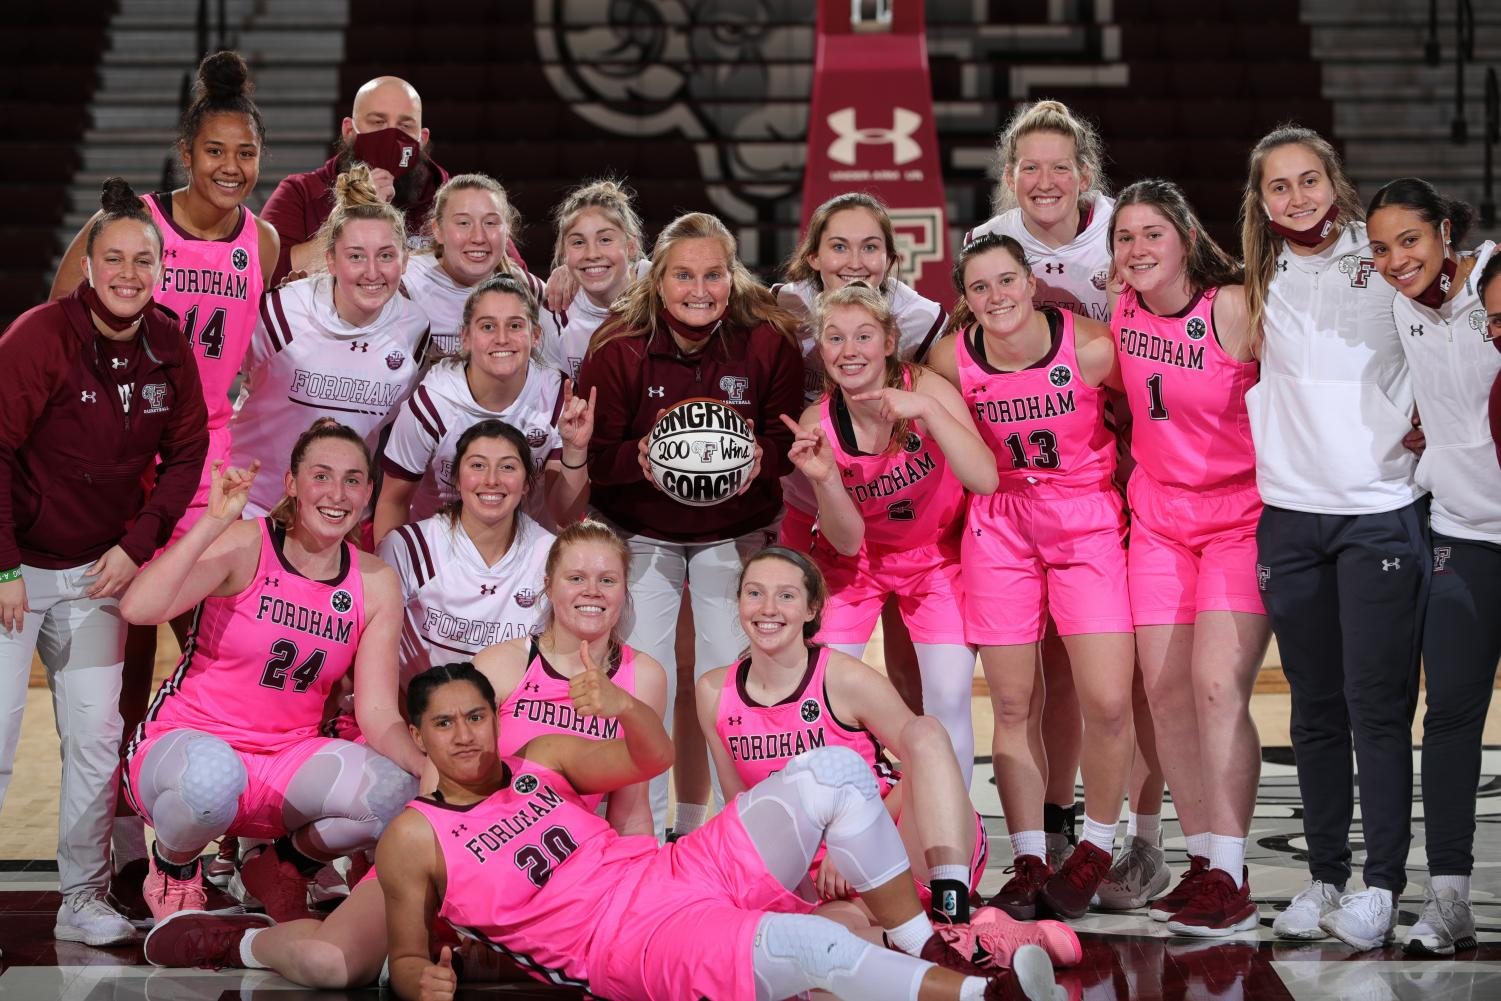 group photo of fordham women's basketball team and their coach smiling after defeating URI